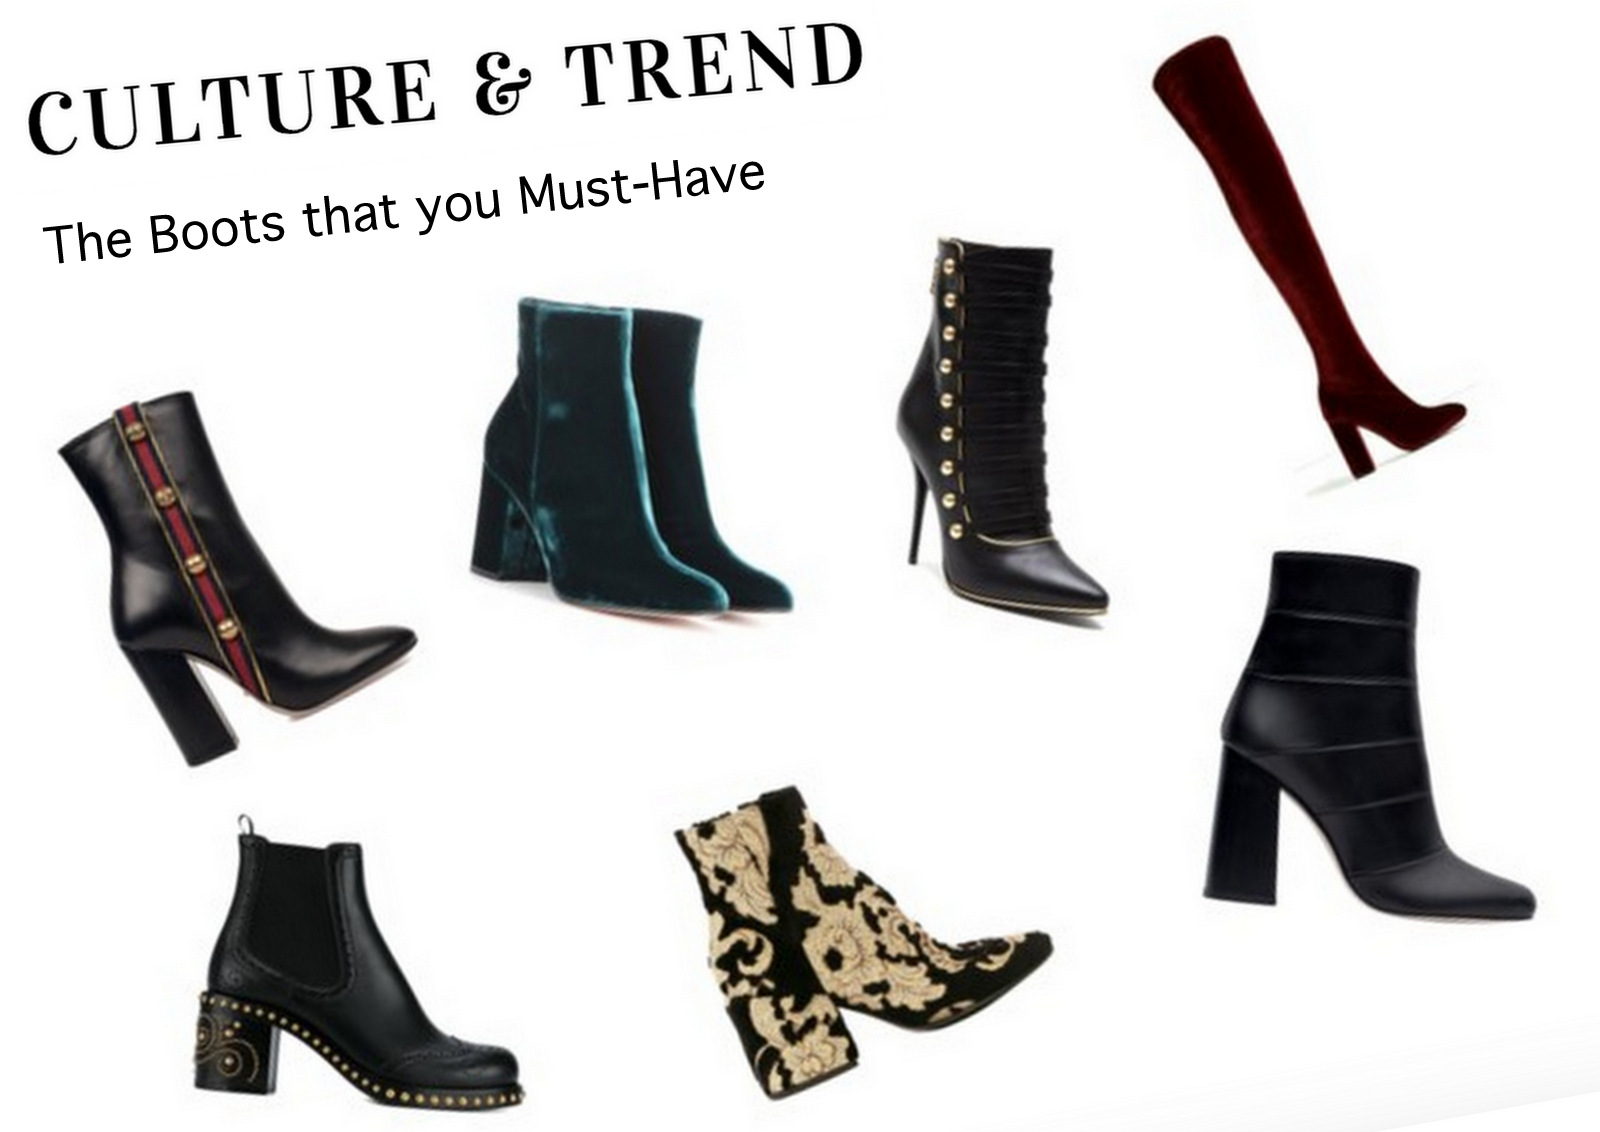 boots, trends, new trends, zara, asos, strategia, shoes, Culture & Trend Magazine, wishlist